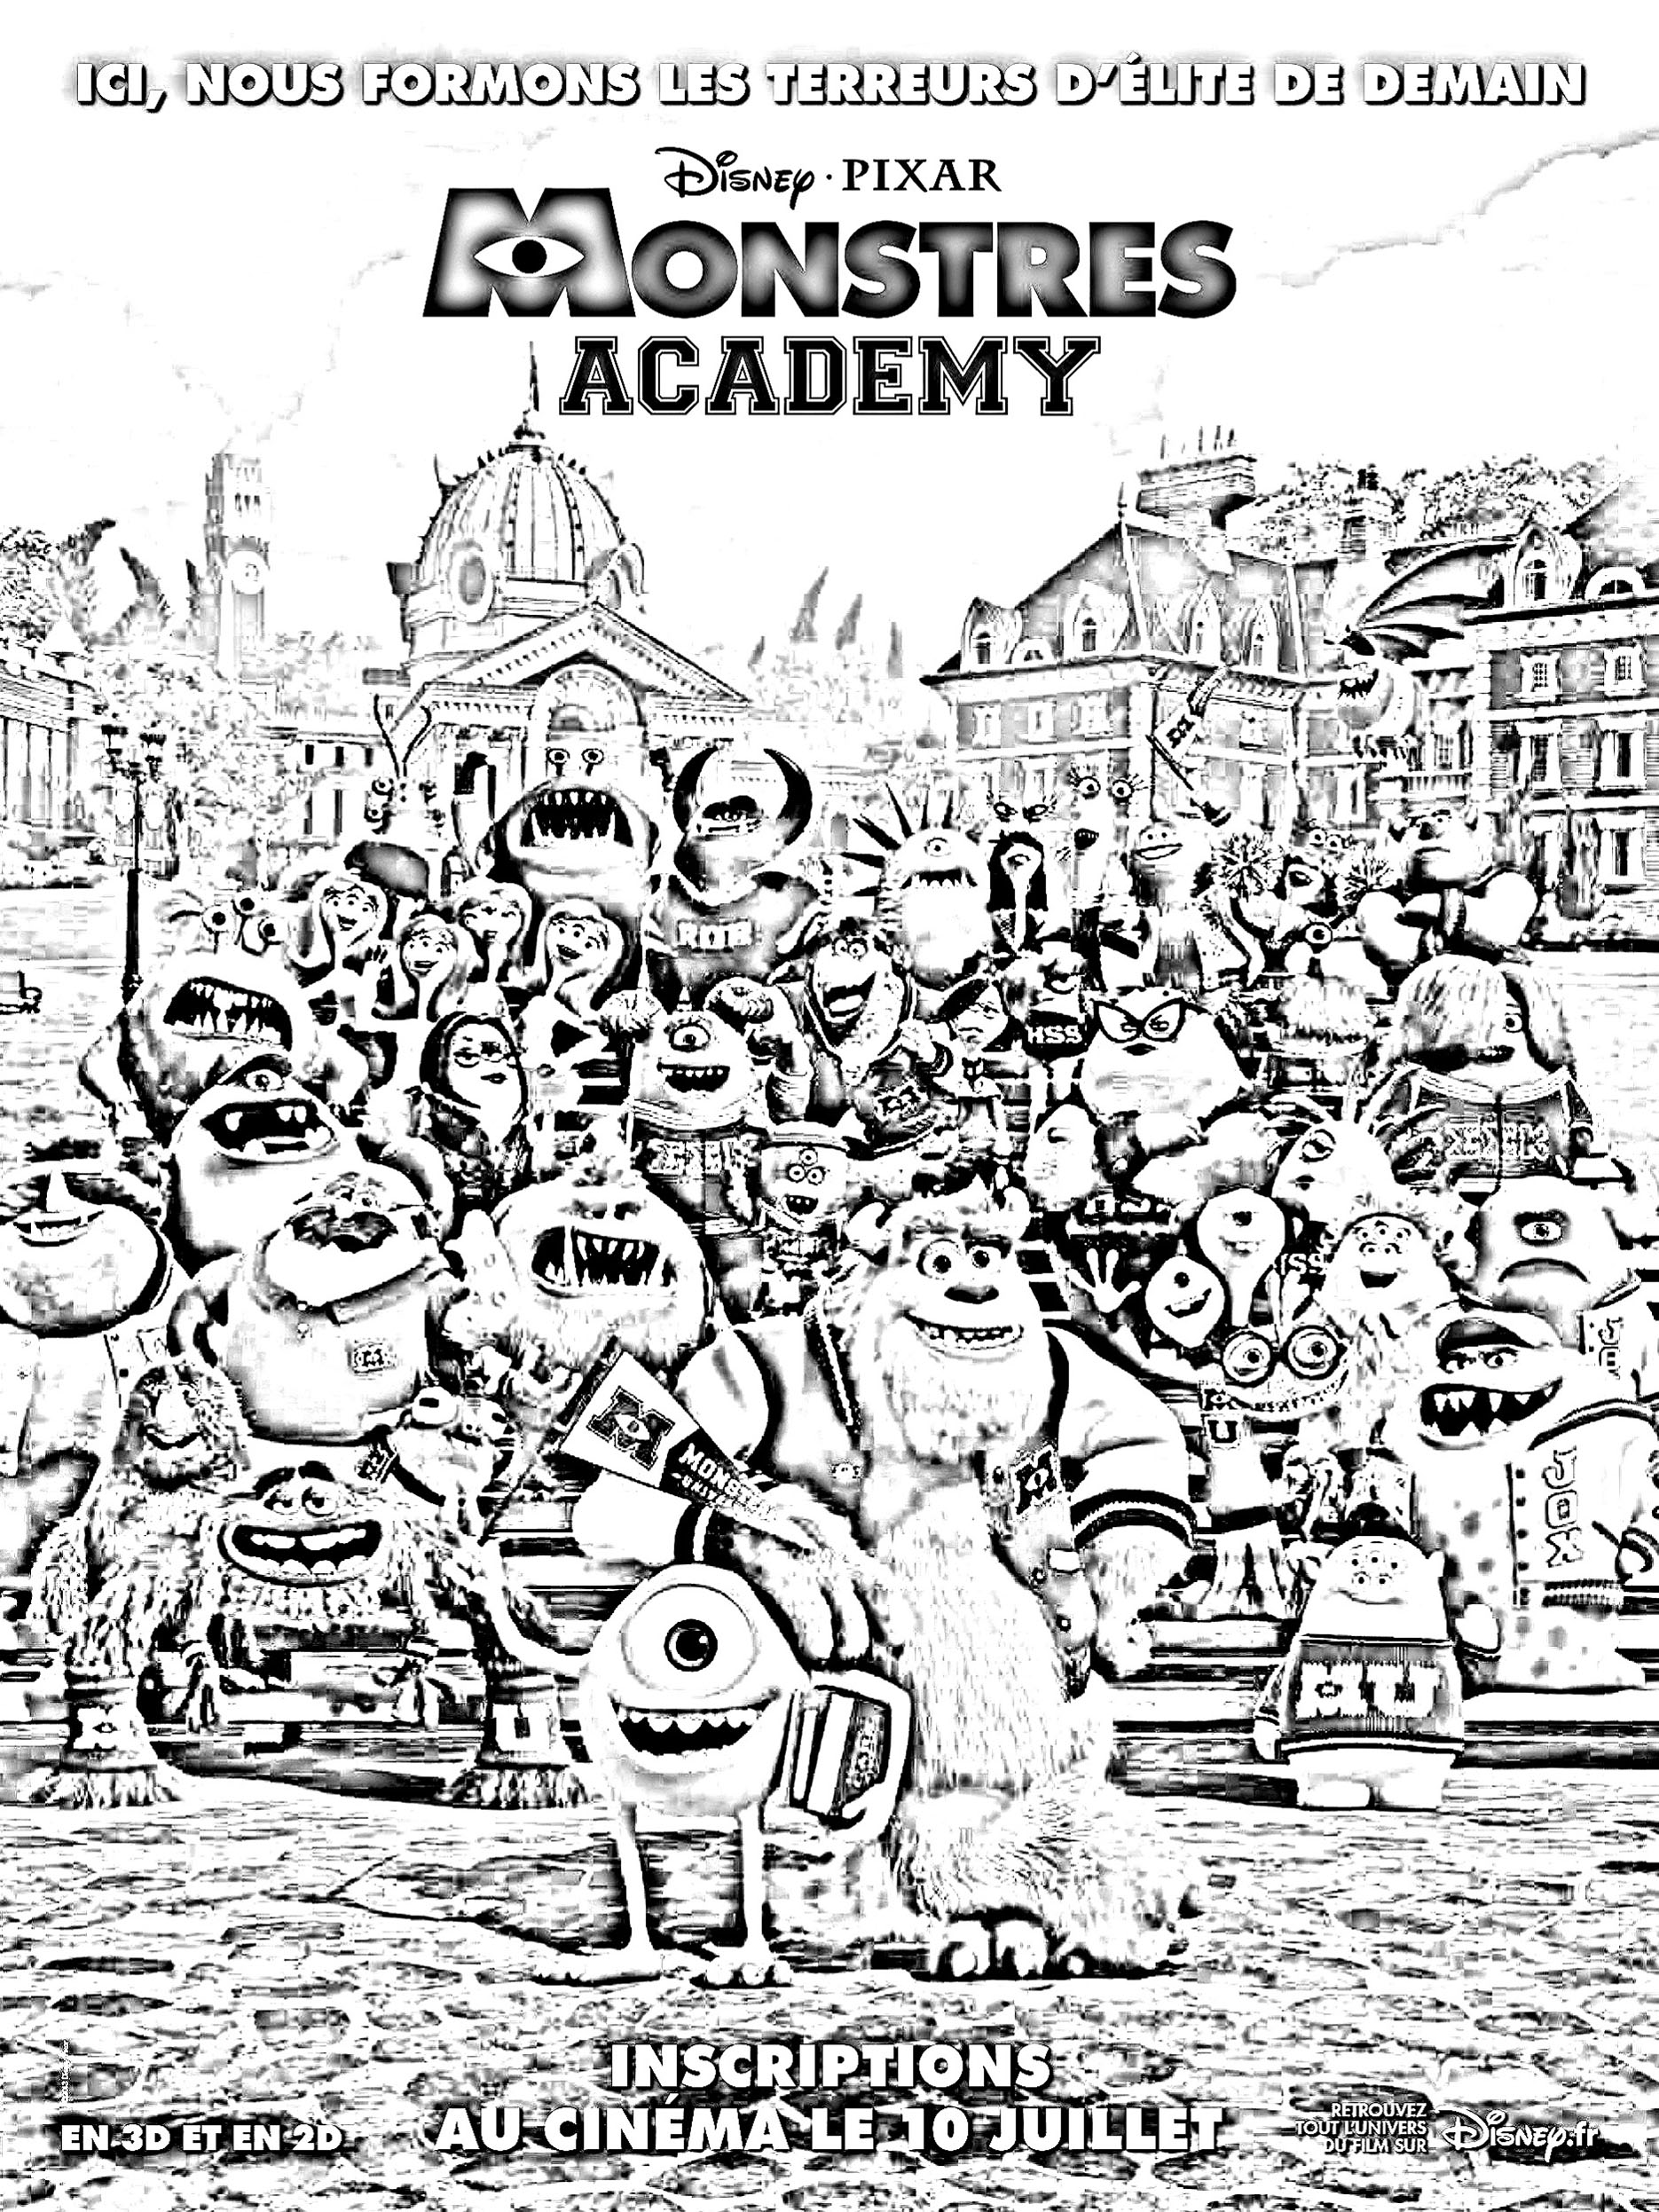 Movie montres academy - Movies Adult Coloring Pages